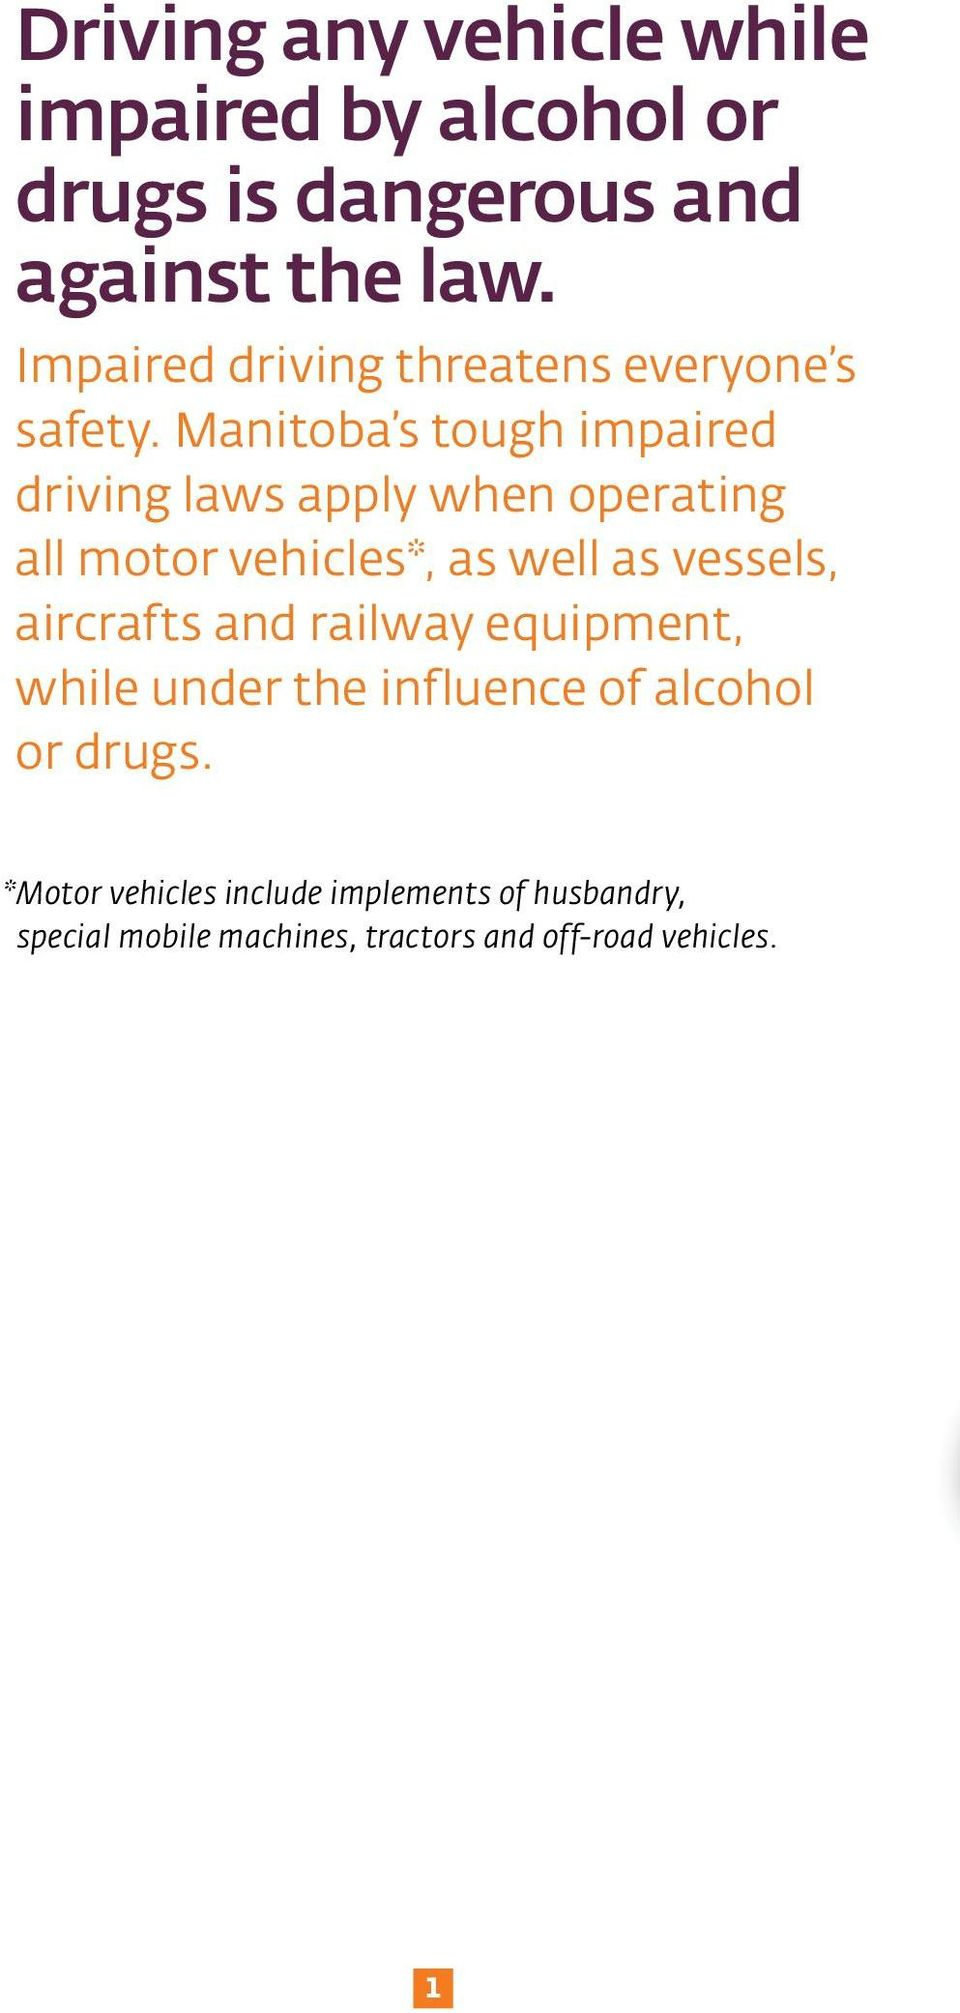 Manitoba s tough impaired driving laws apply when operating all motor vehicles*, as well as vessels,